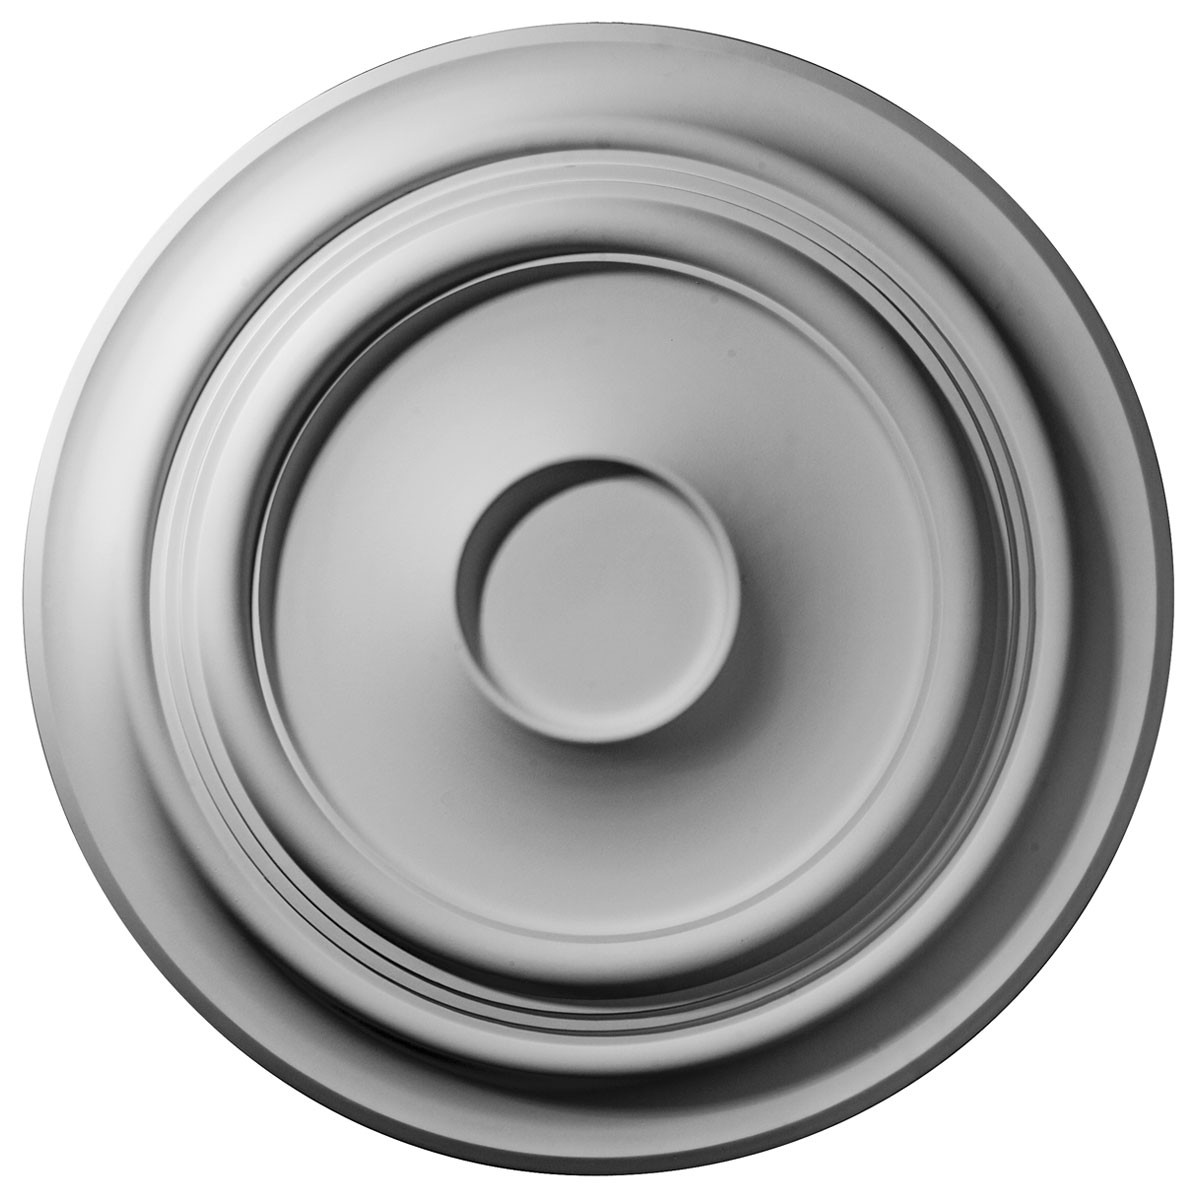 """EM-CM32GI - 32 5/8""""OD x 1 1/2""""P Giana Ceiling Medallion (Fits Canopies up to 7 7/8"""")"""